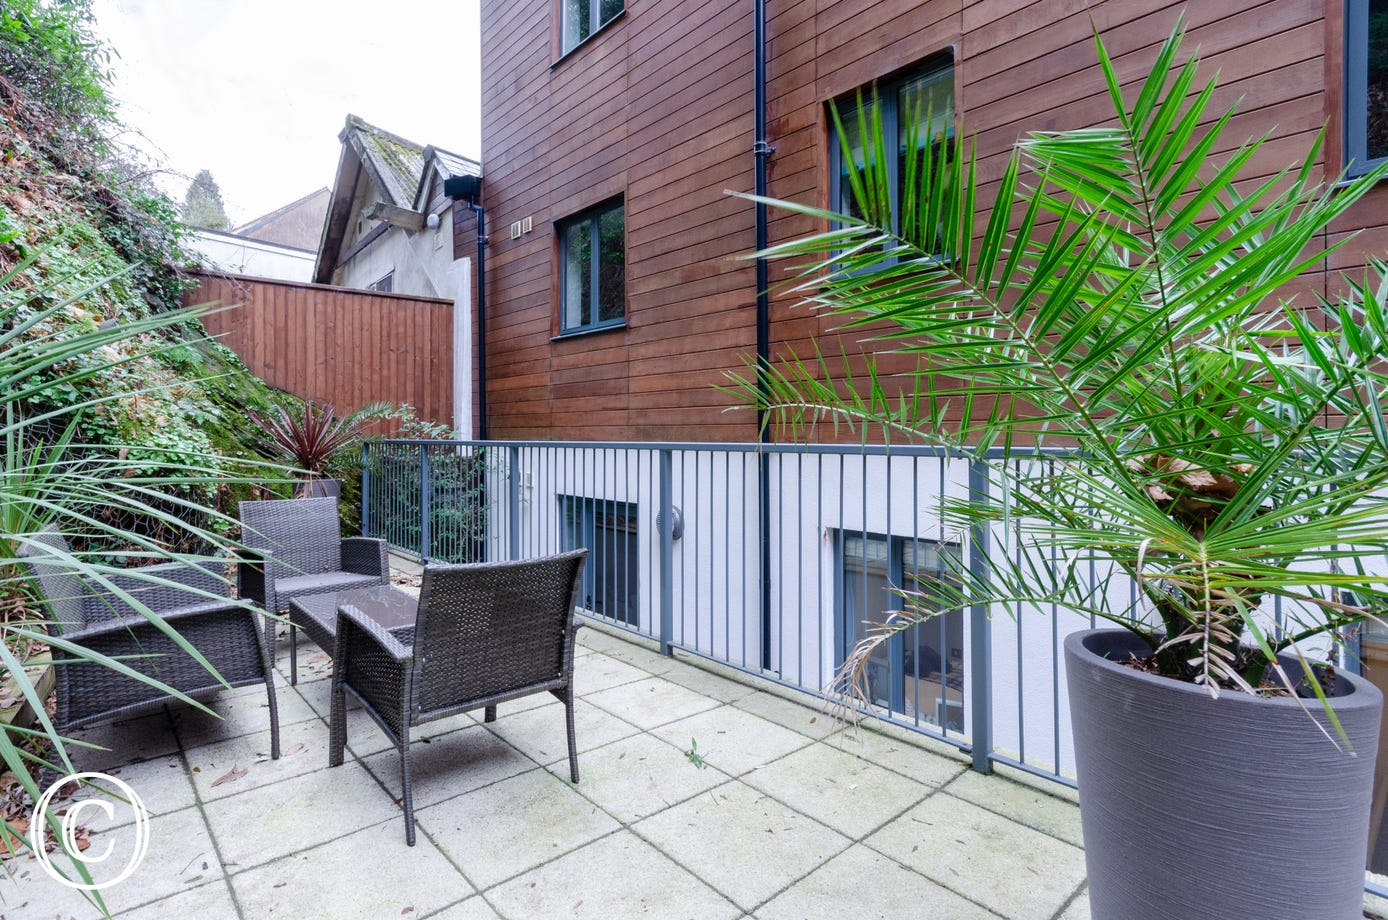 Shared rear terrace with outdoor seating